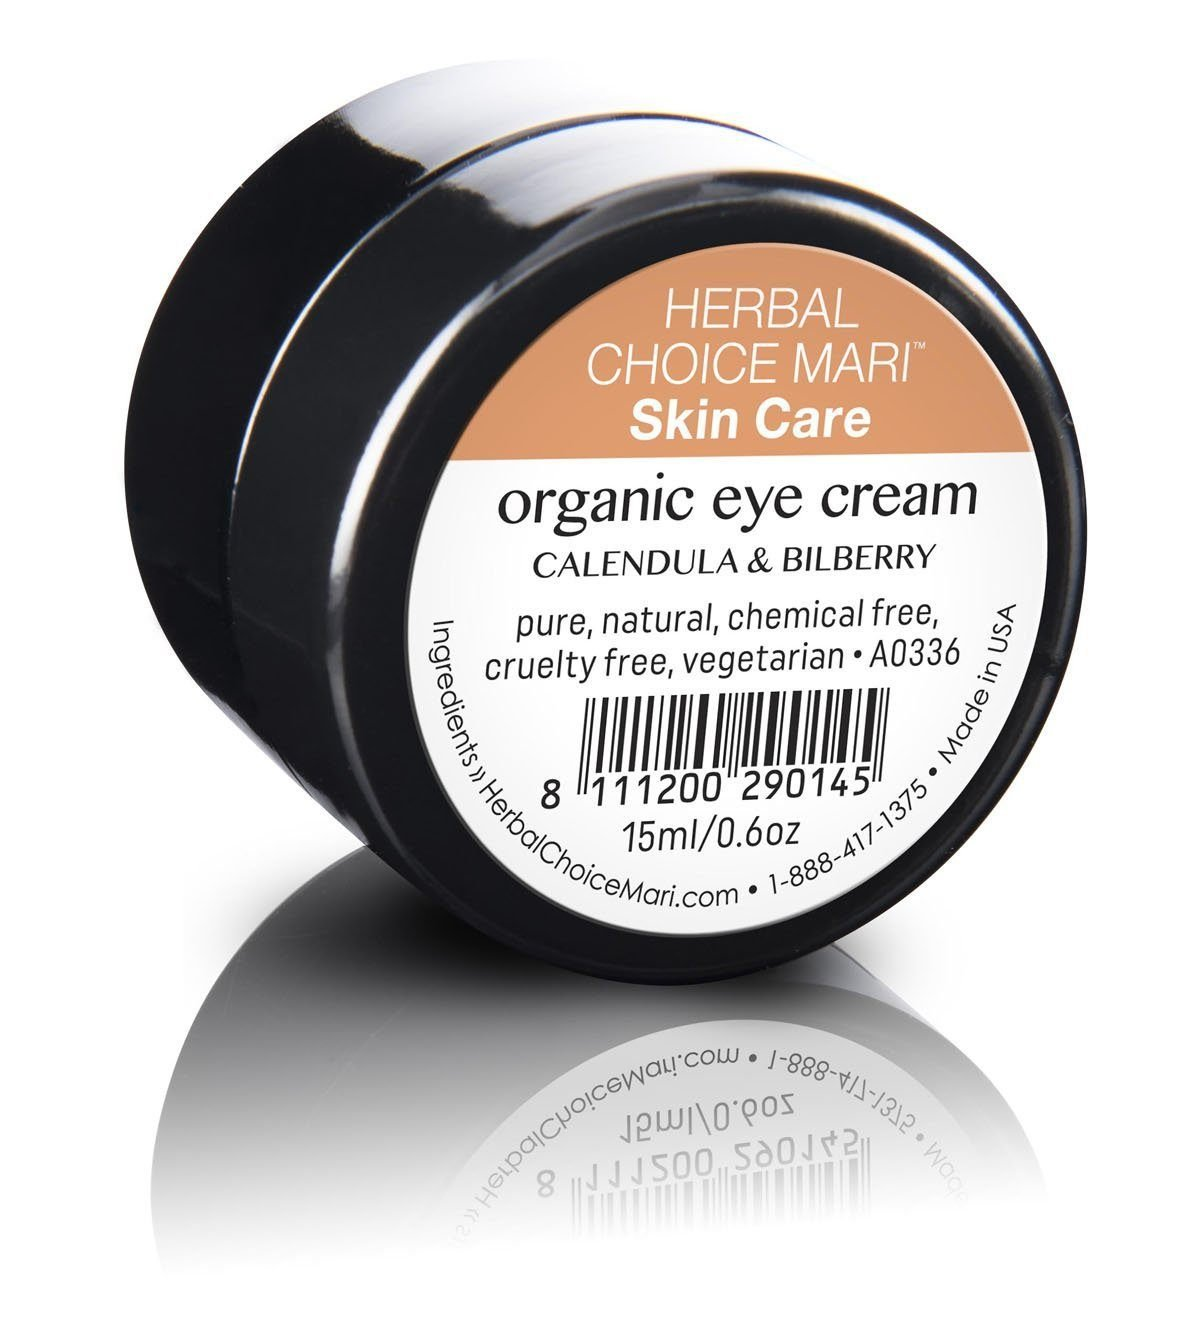 Herbal Choice Mari Organic Eye Cream; 0.5floz Glass